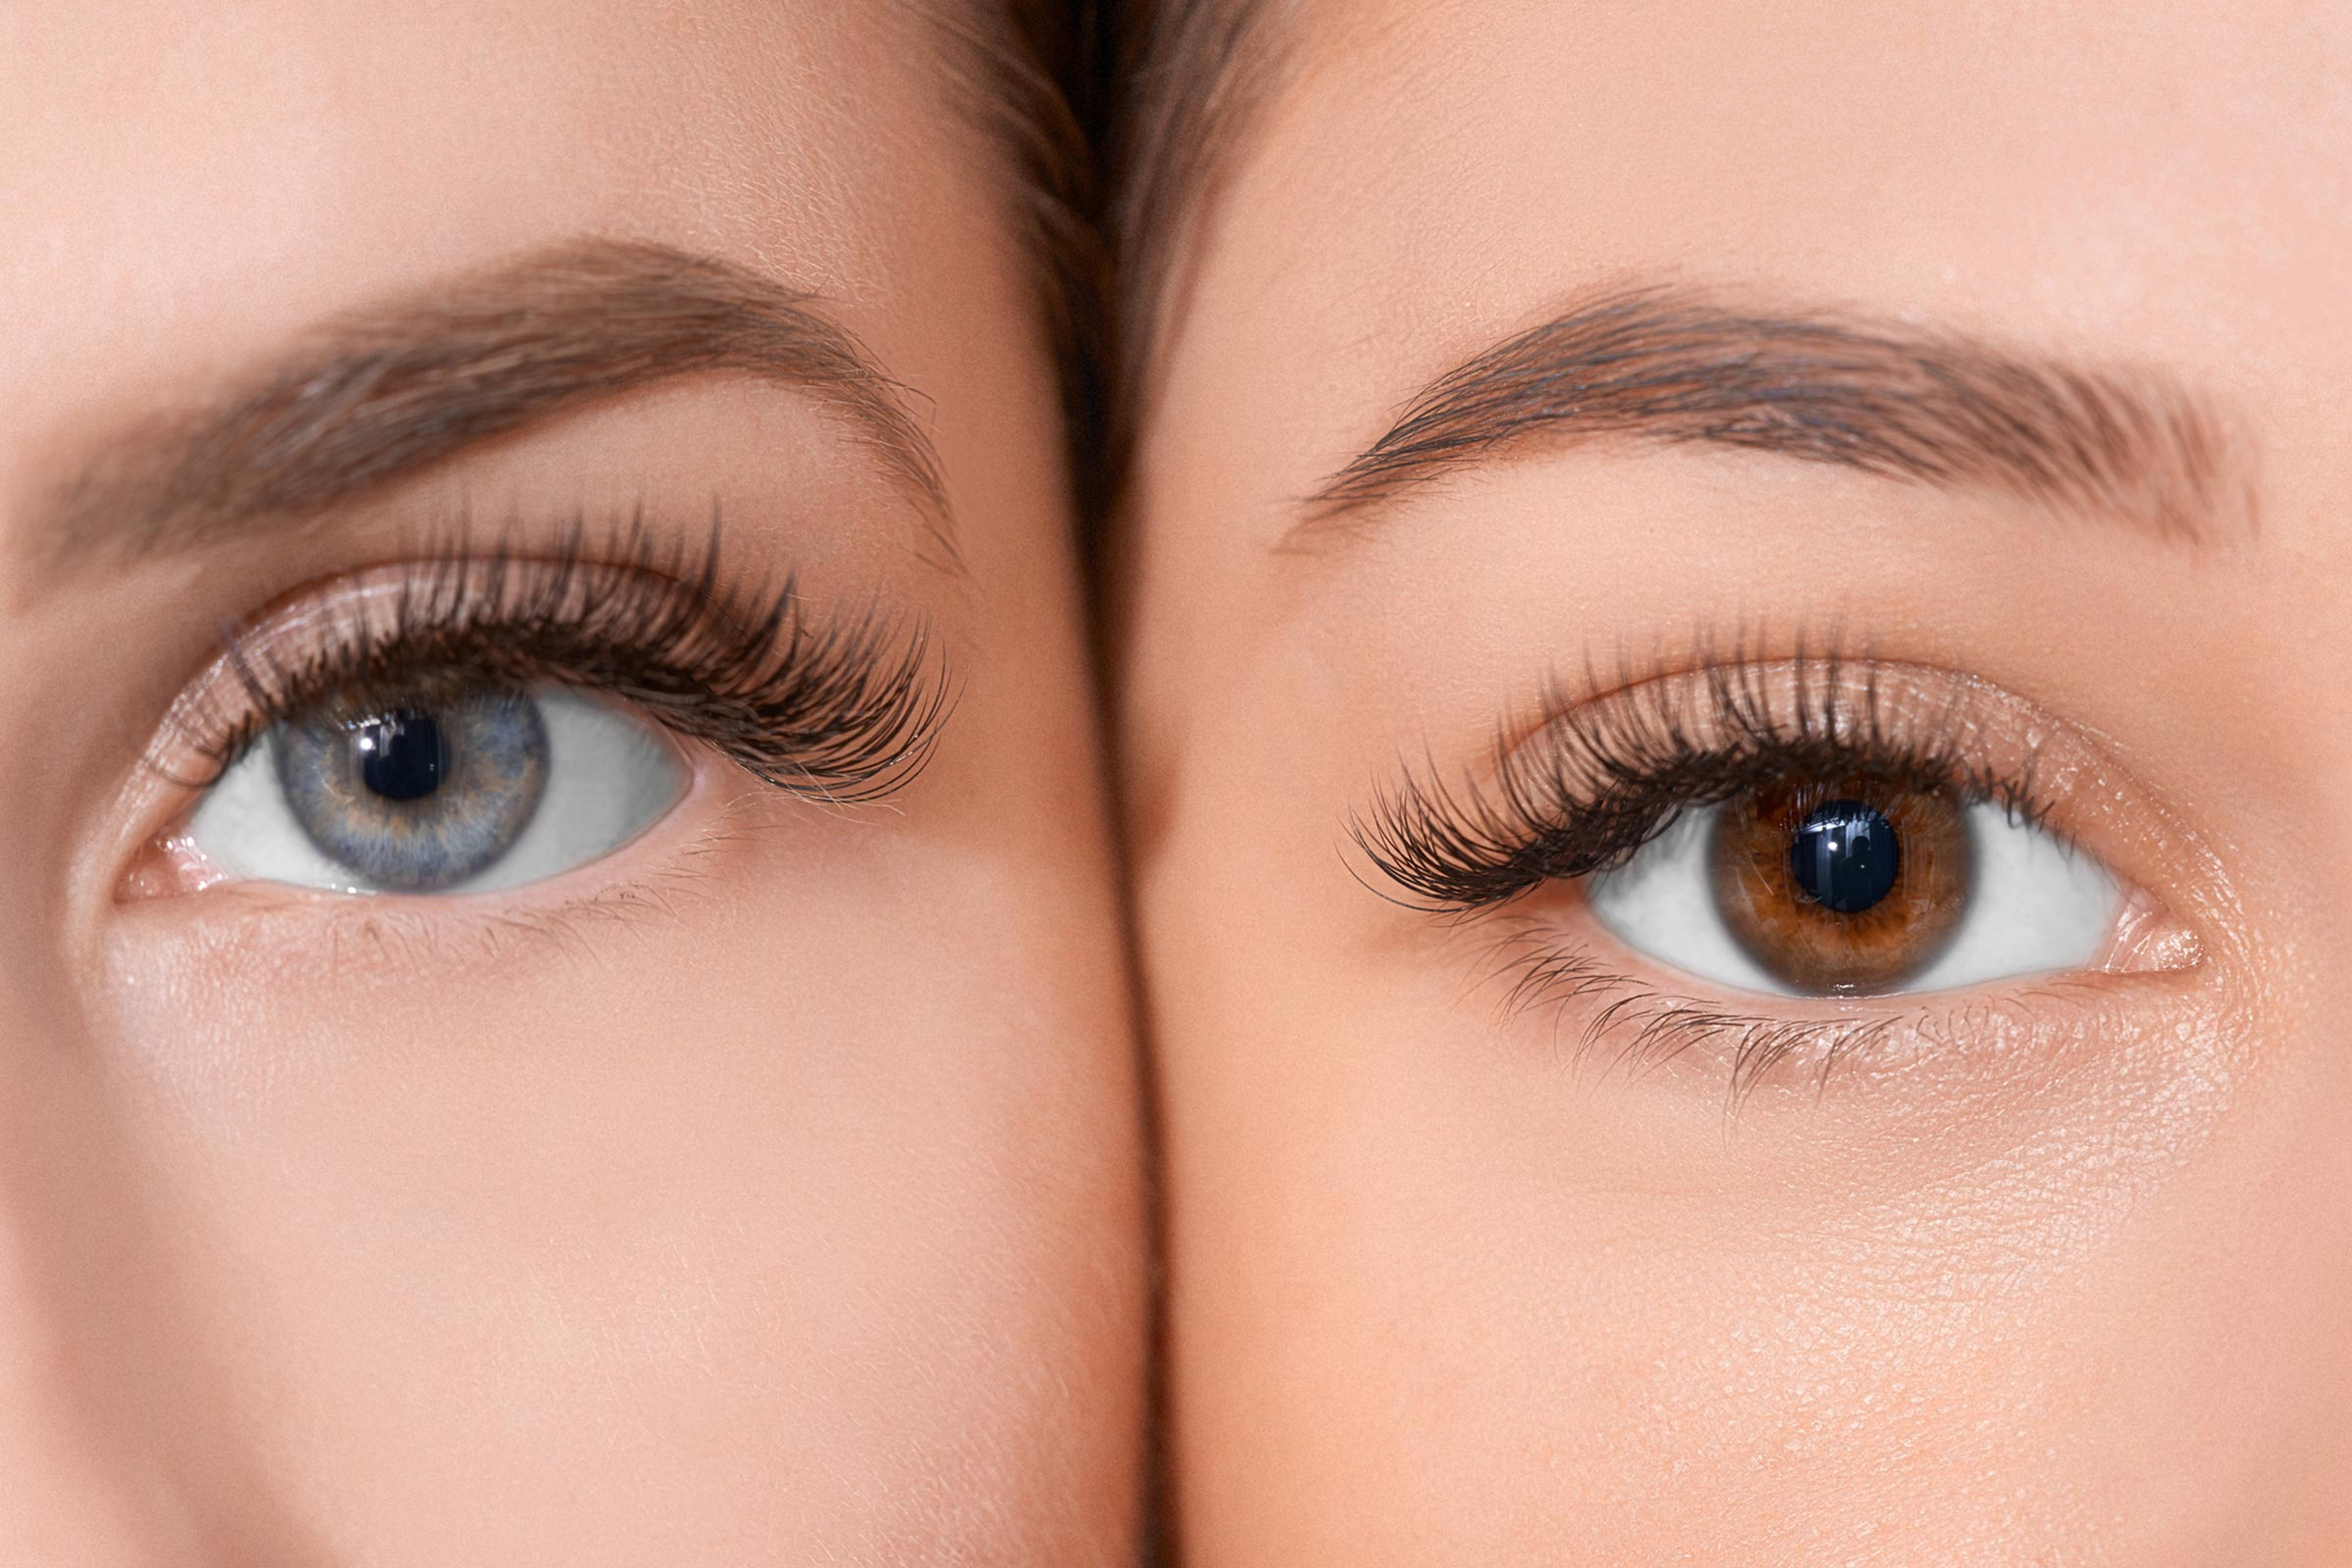 b7972c878cd Tans & Lashes by Chrissy Broehl in Sandpoint, Idaho